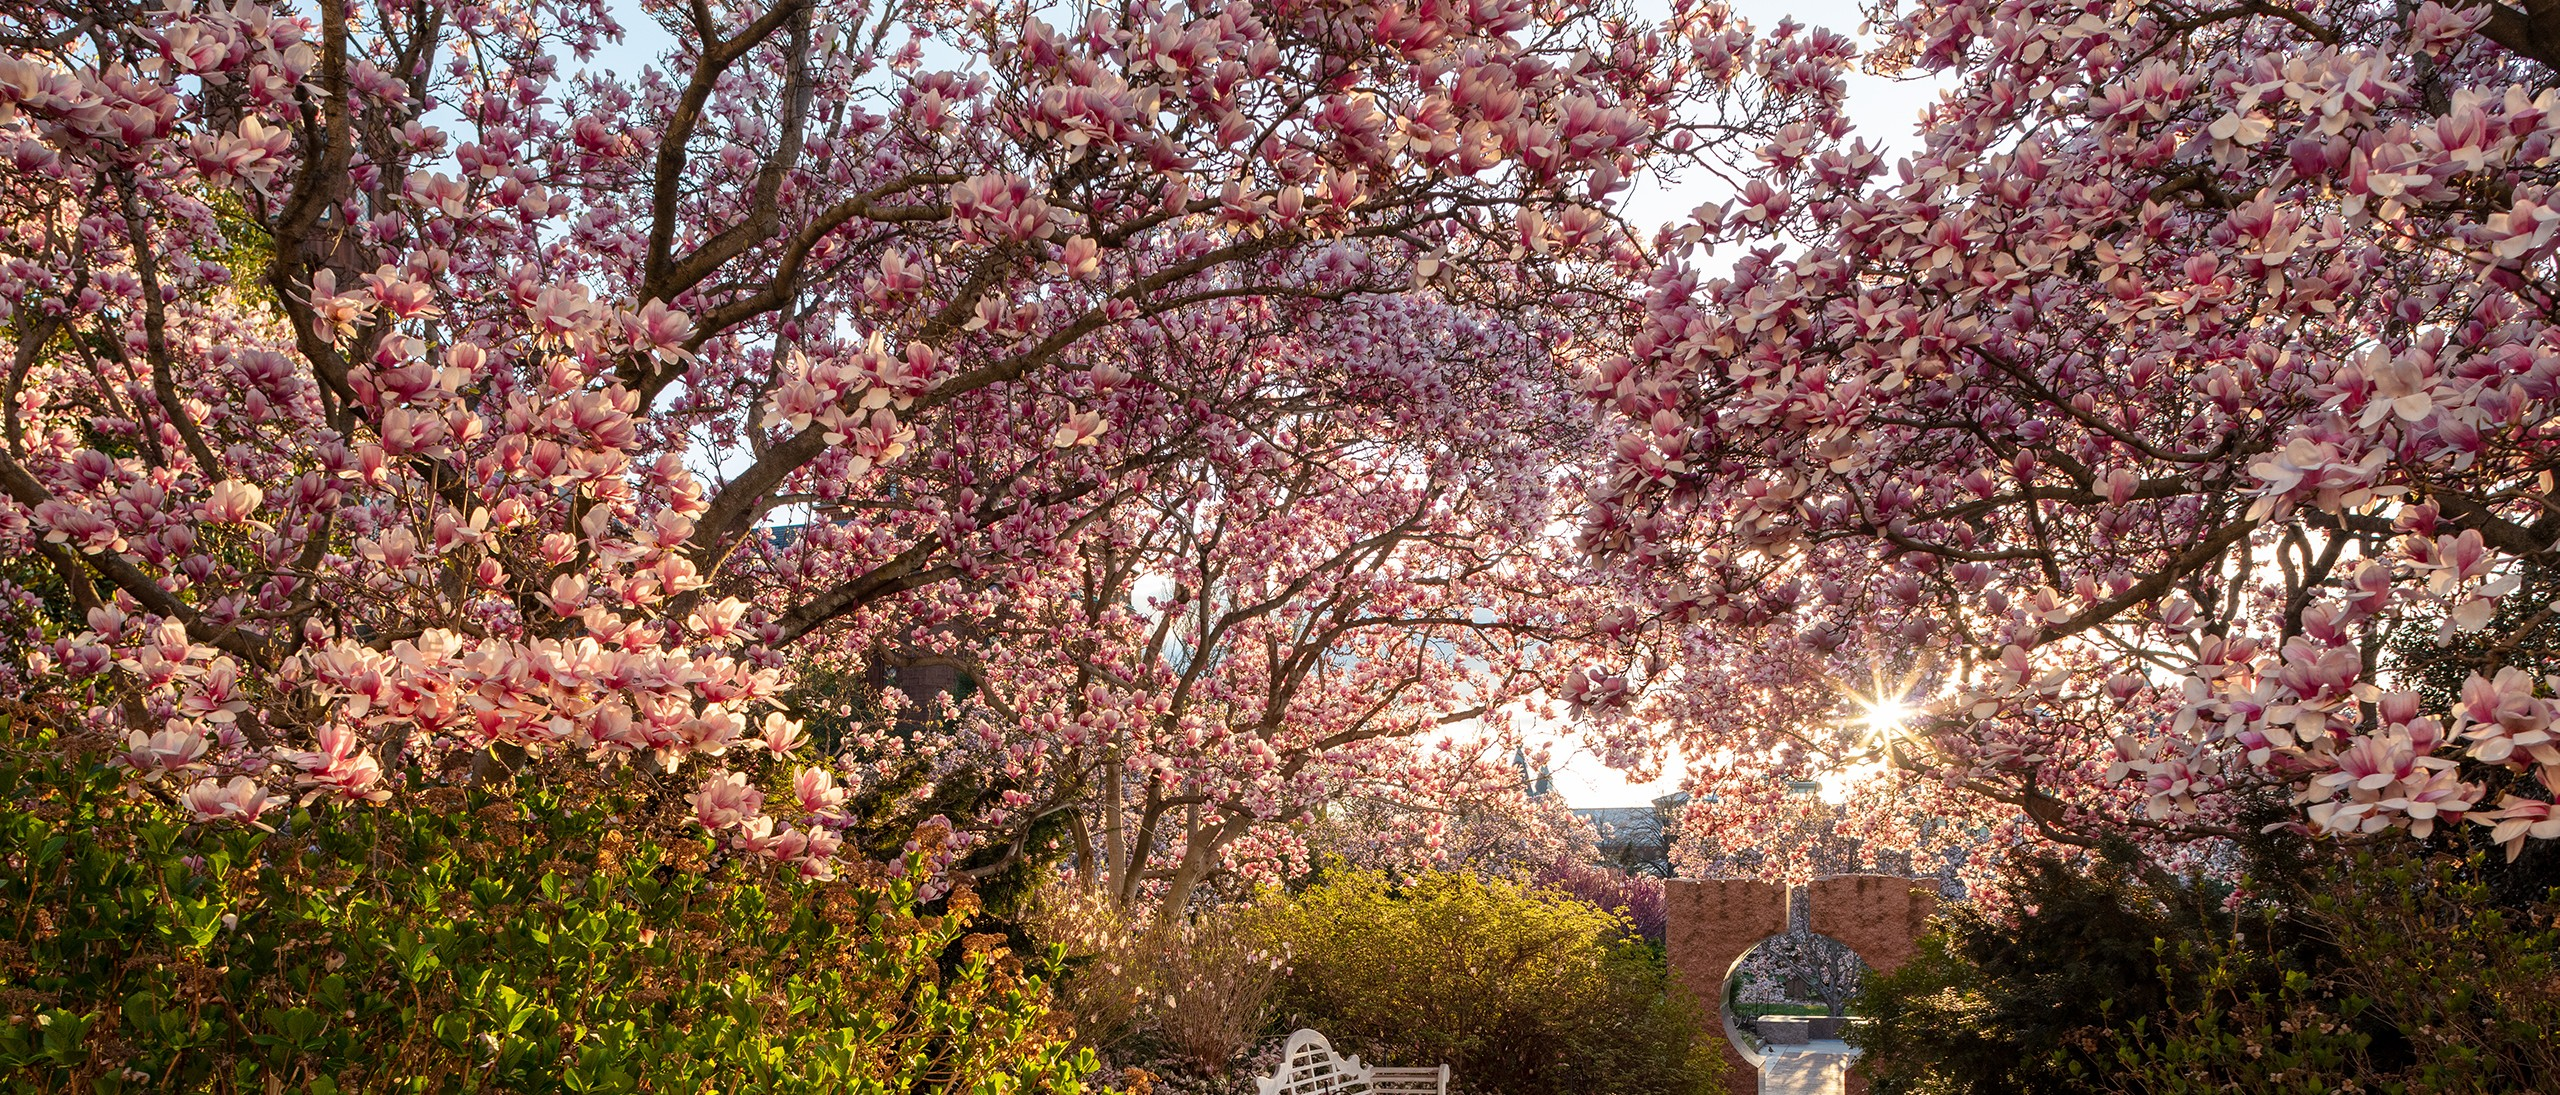 Pink saucer magnolias blooming with sun rising behind